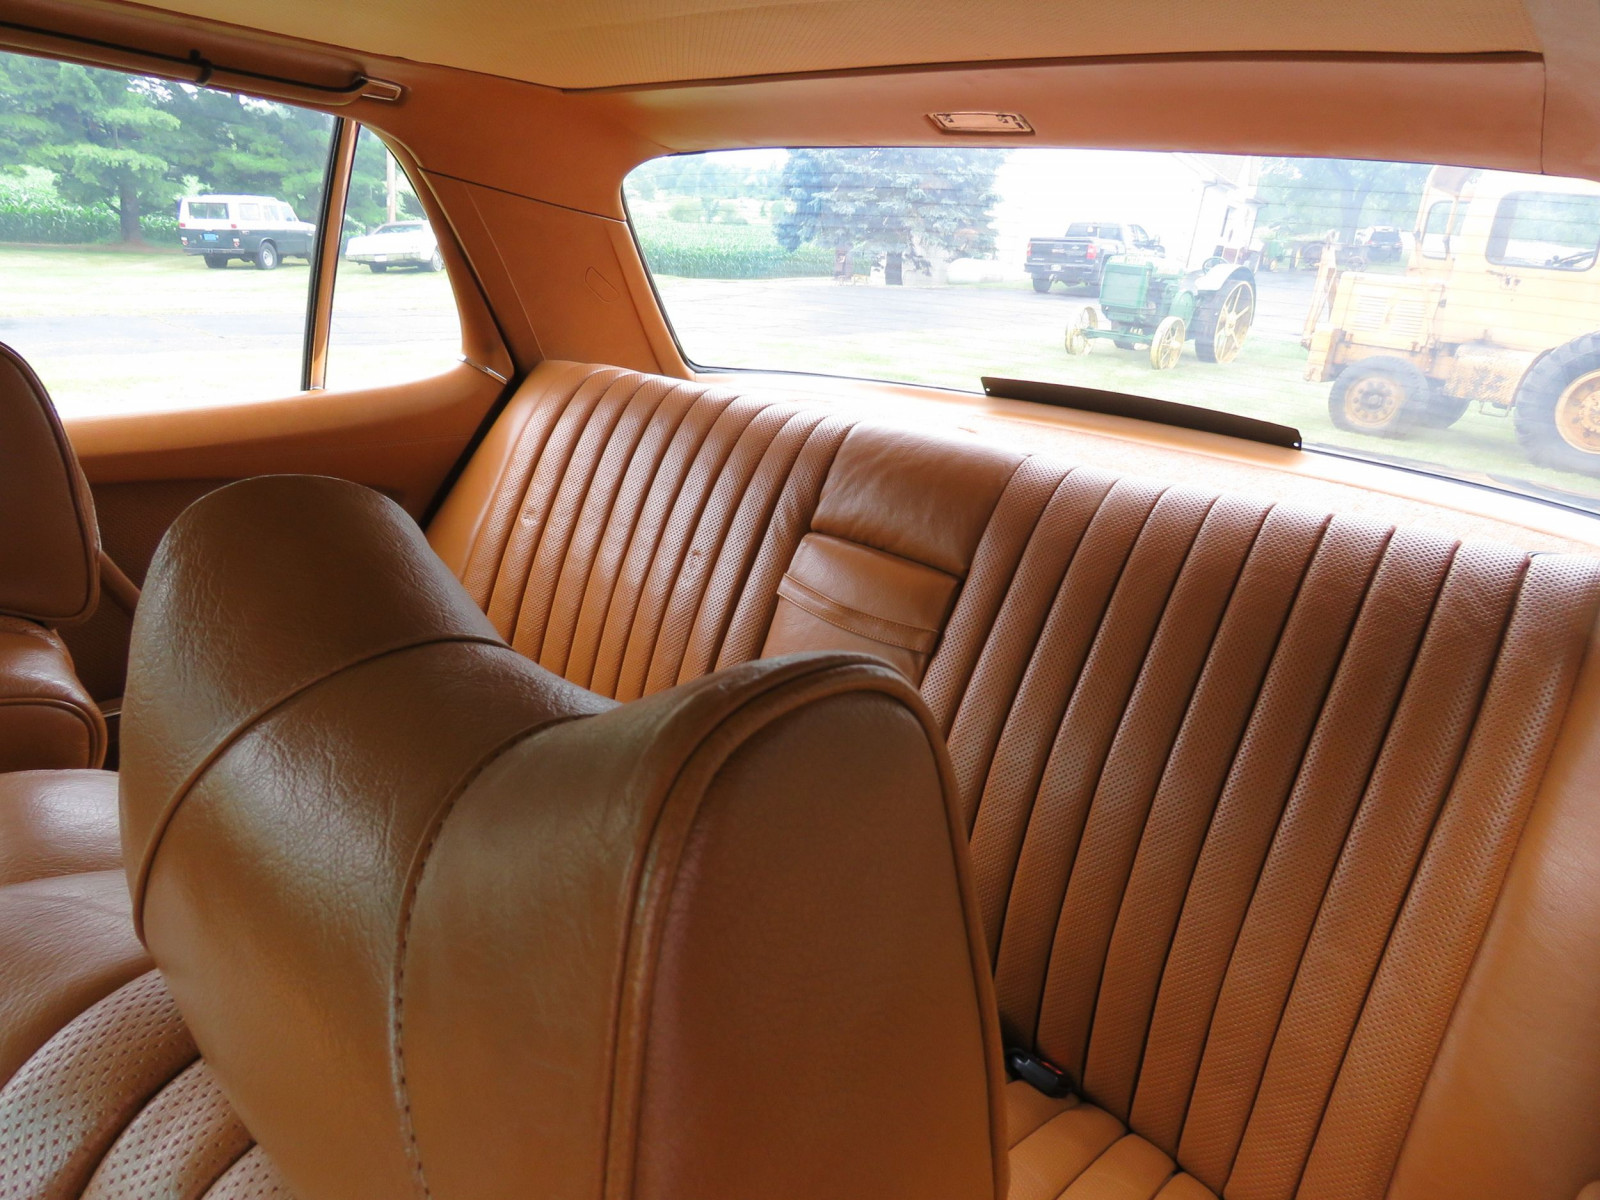 1973 Mercedes 450 SE 4dr Sedan - Image 11